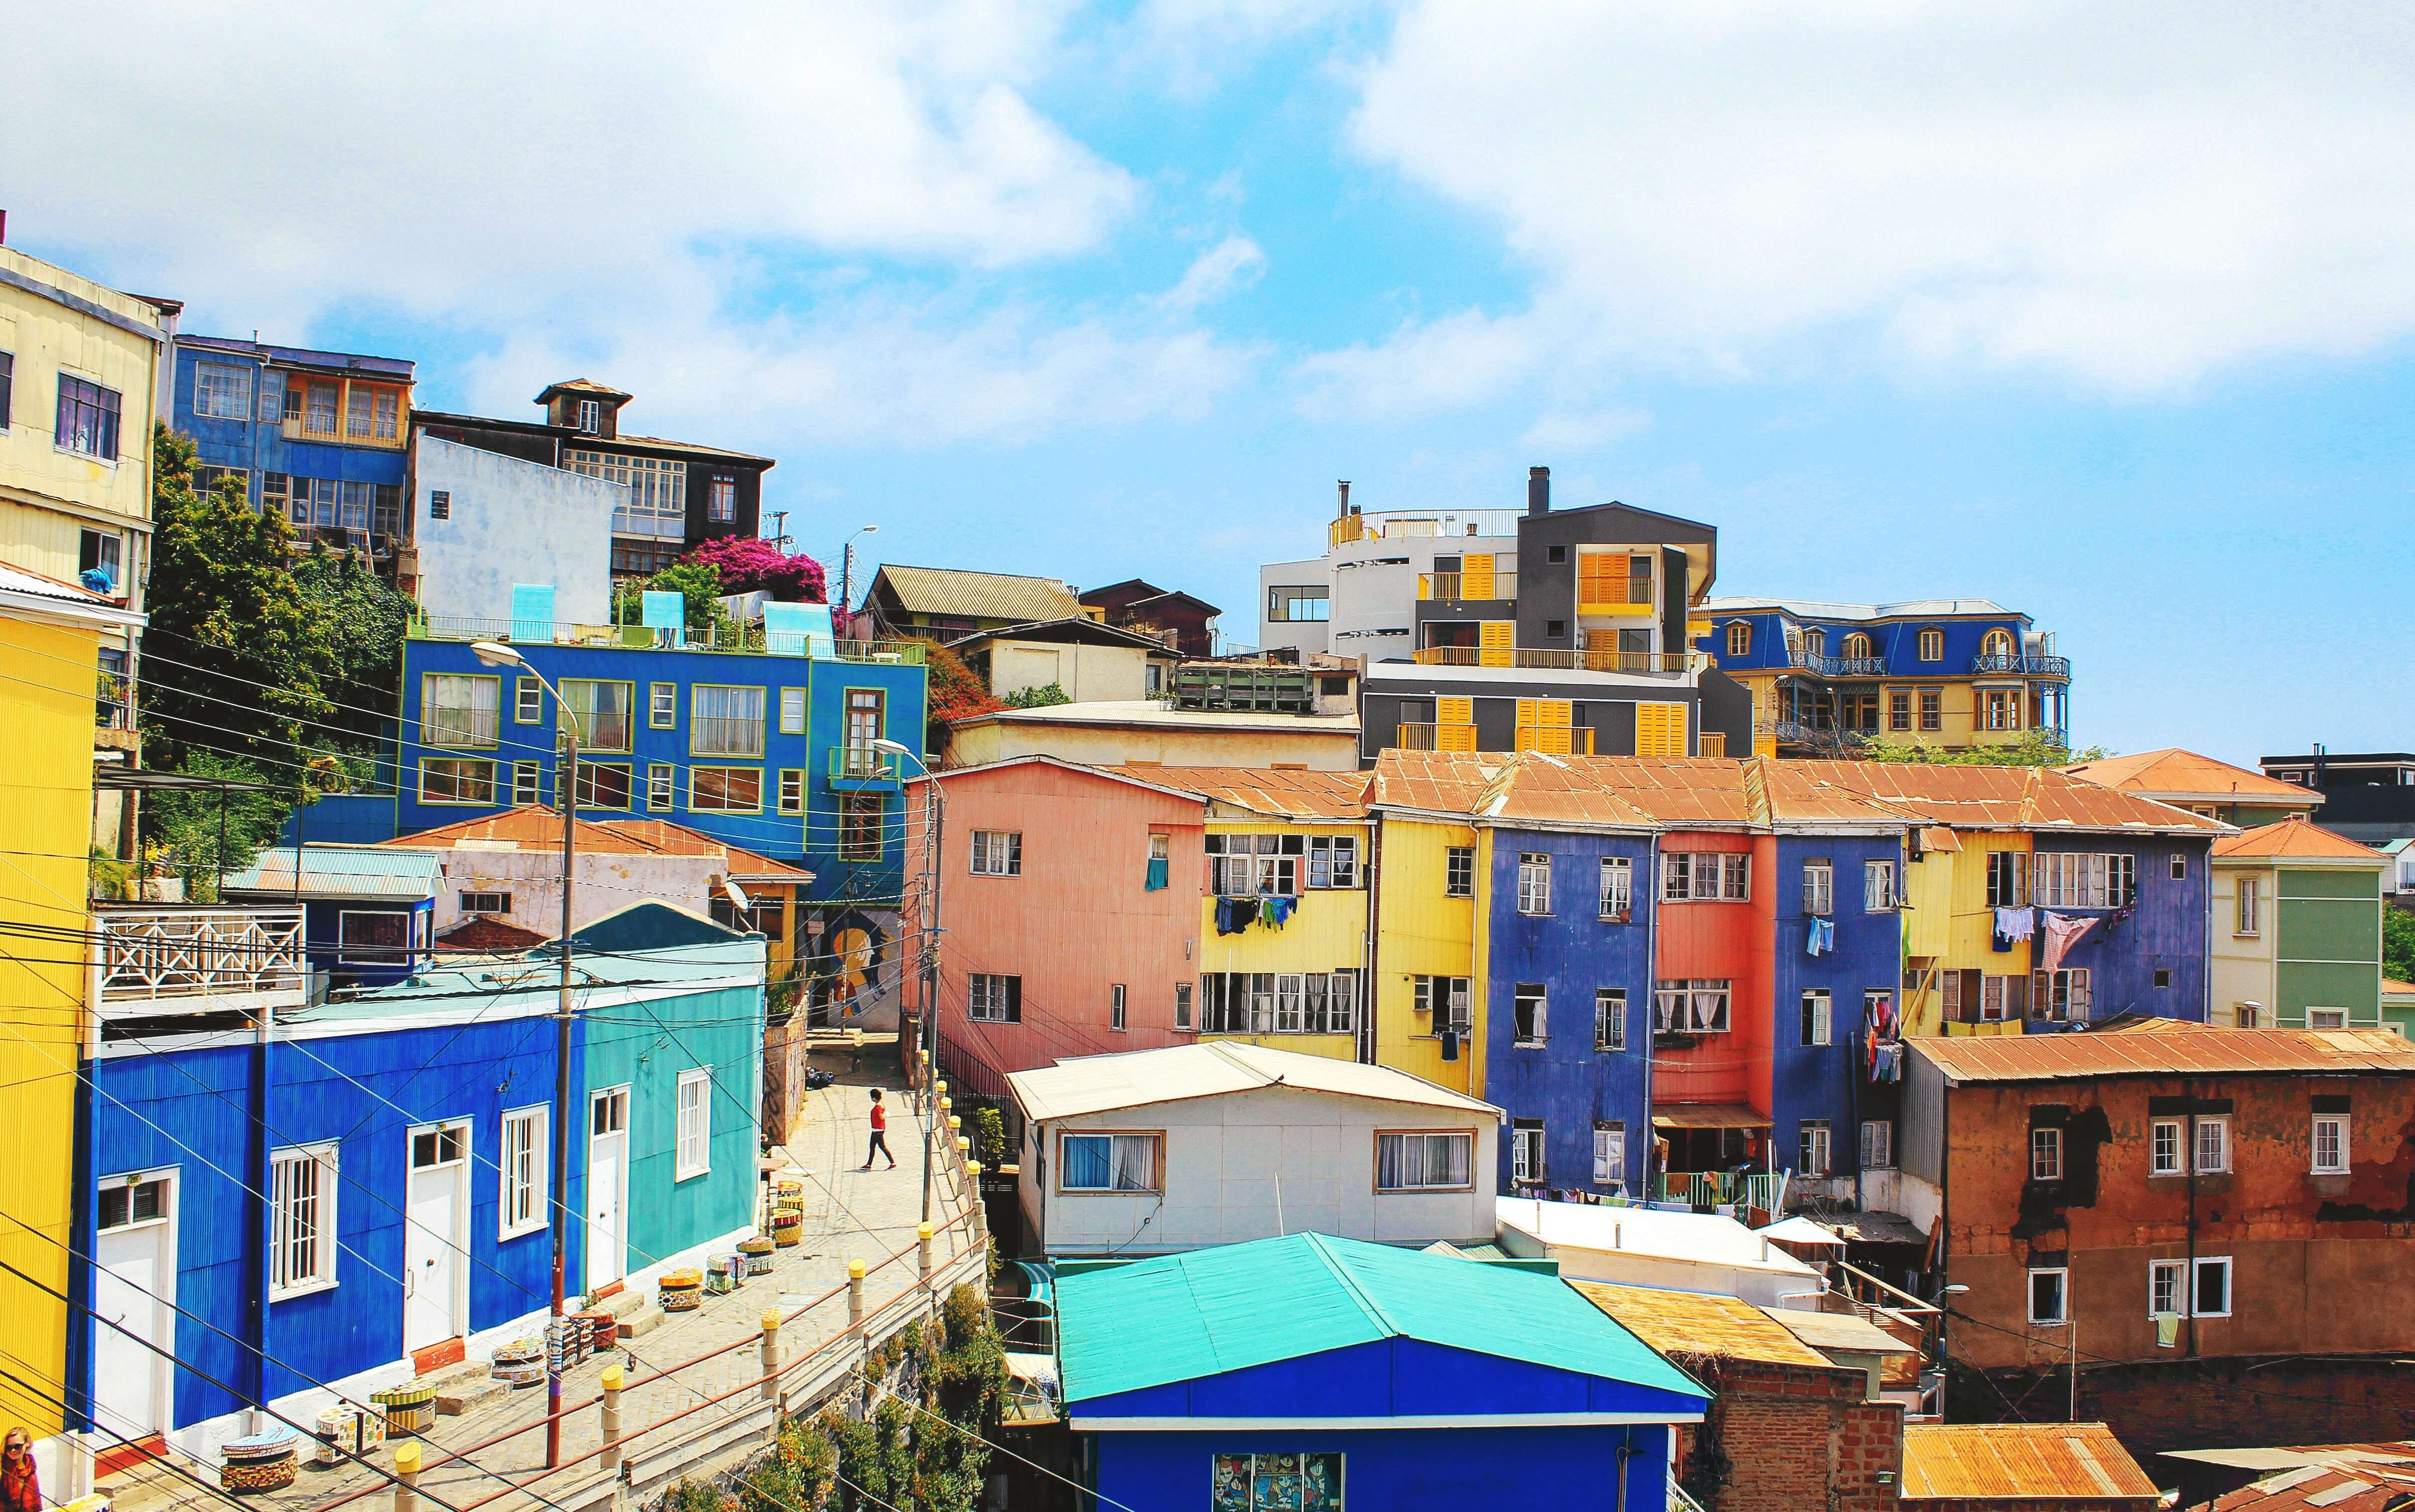 colorful homes on a hill